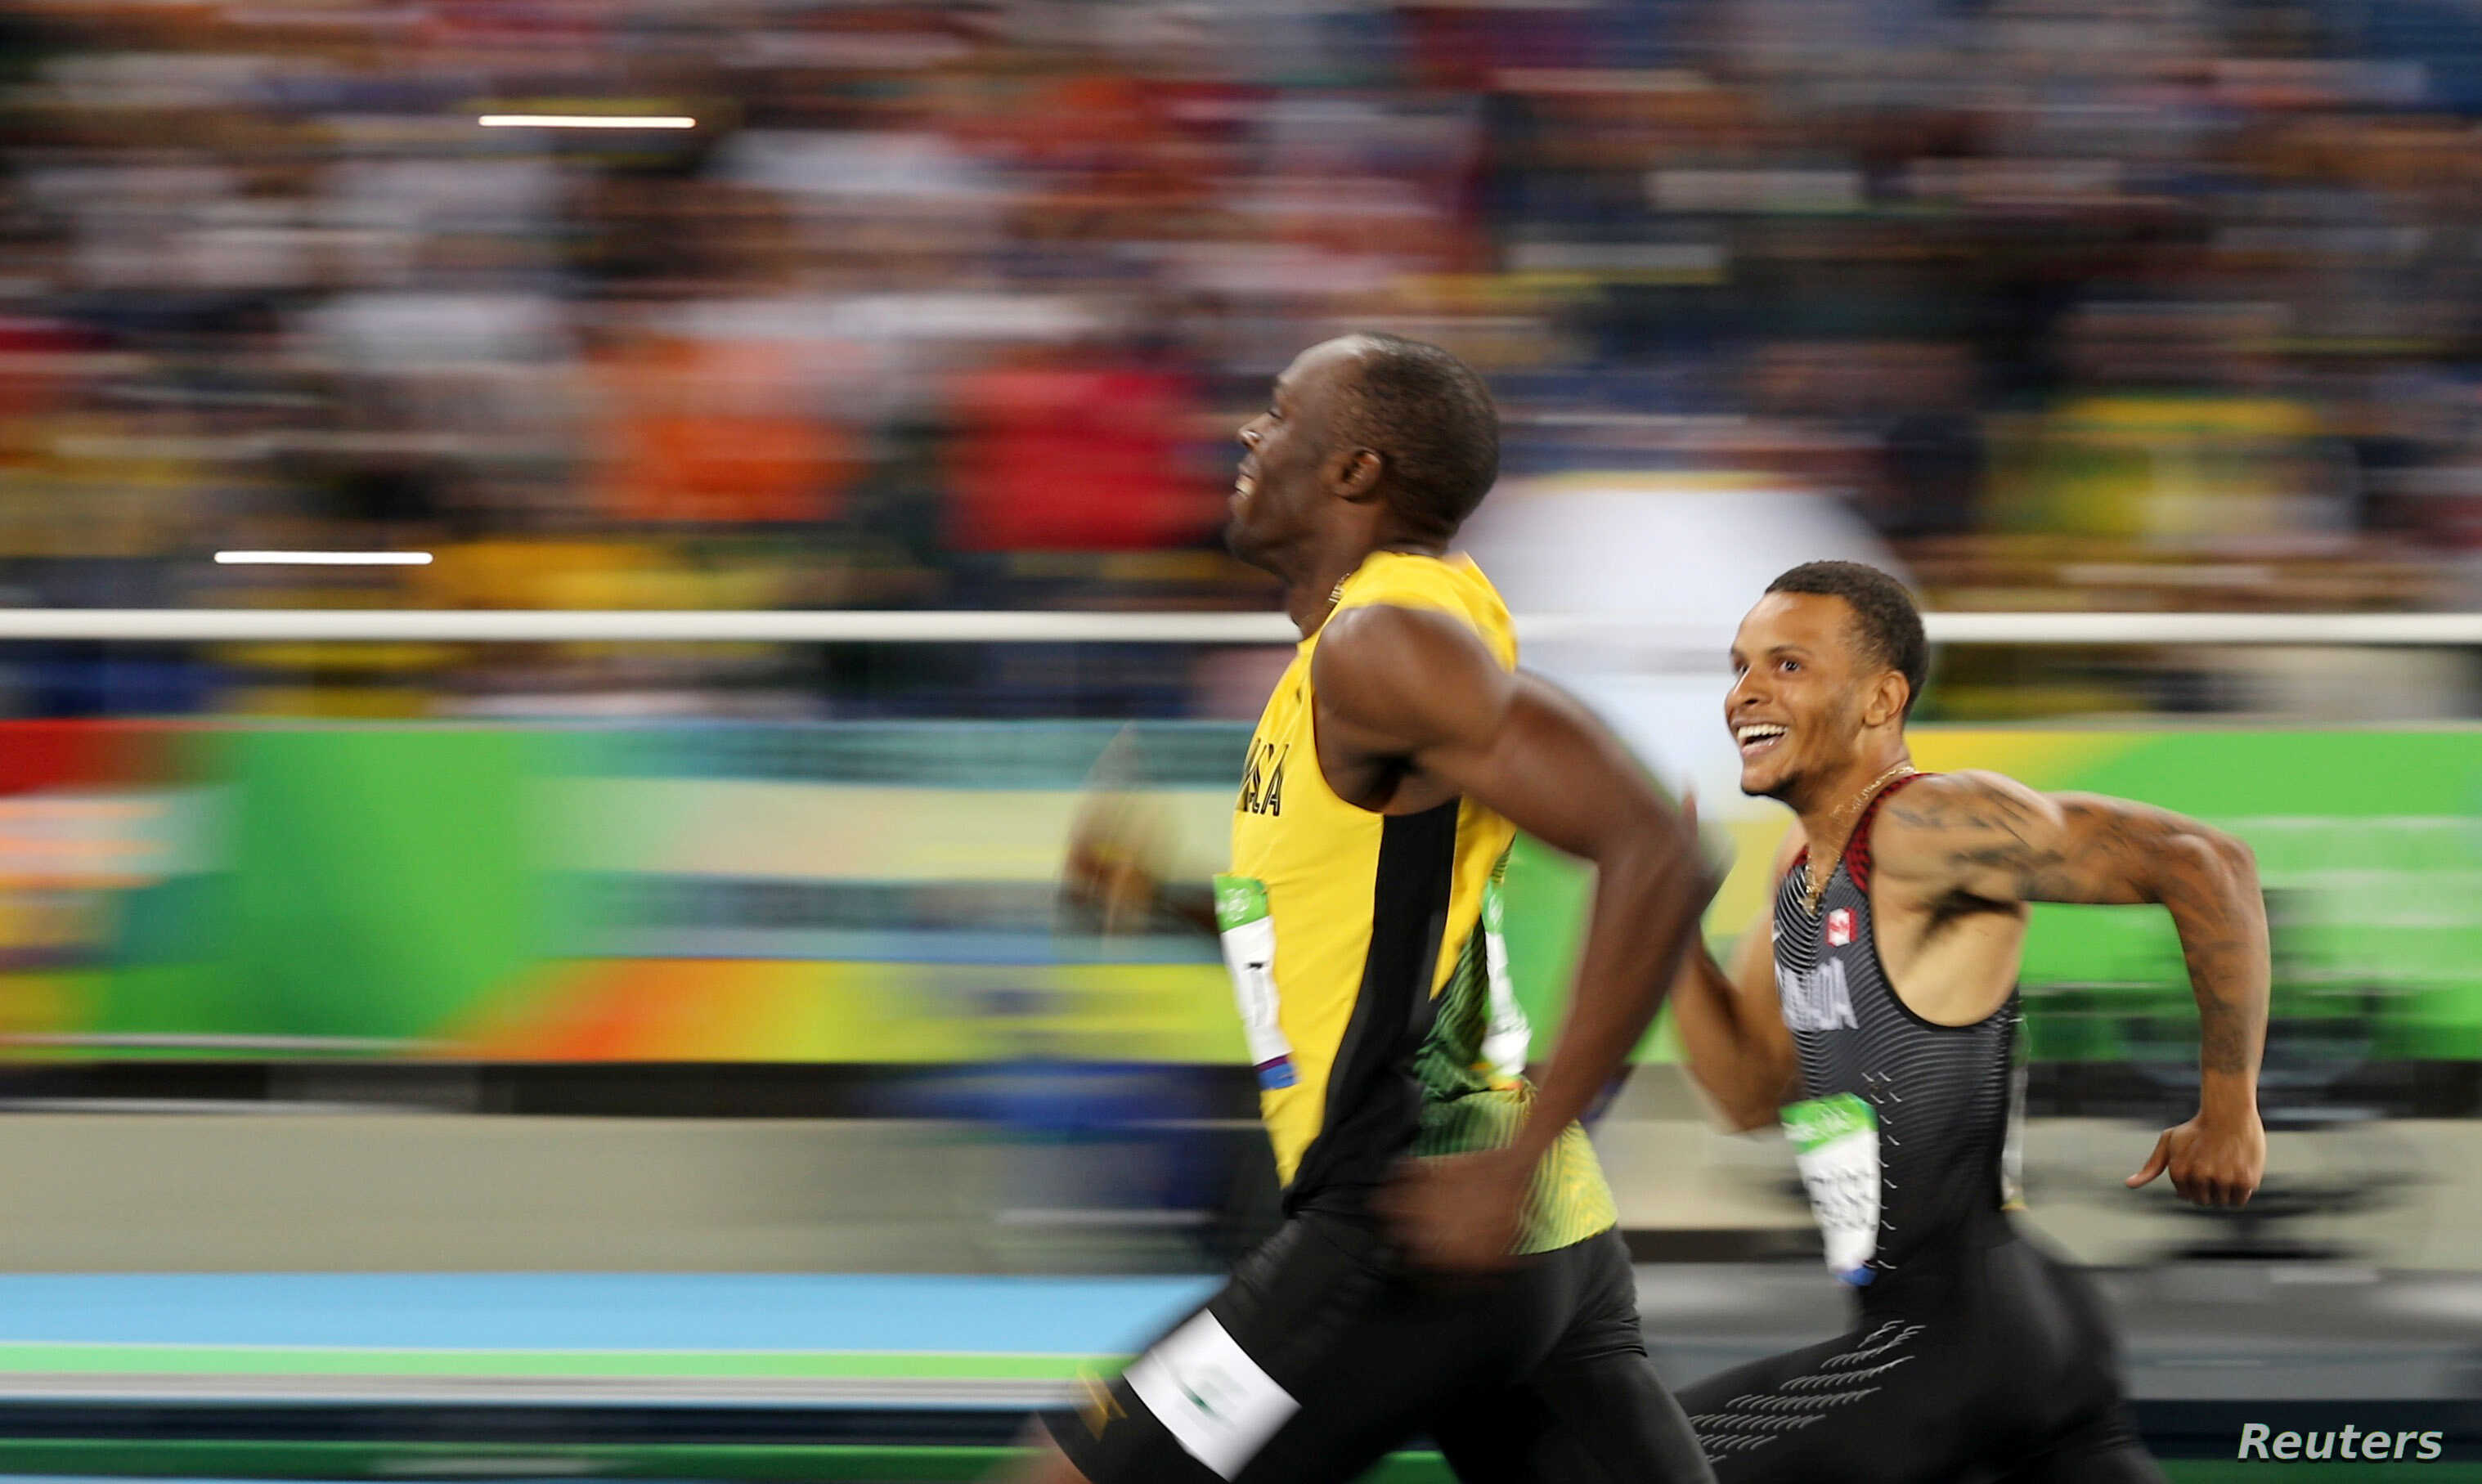 FILE -  Jamaica's Usain Bolt and Canada's Andre De Grasse smile as they compete in the Men's 200m Semifinals at the Rio Olympics,  Aug. 17, 2016.